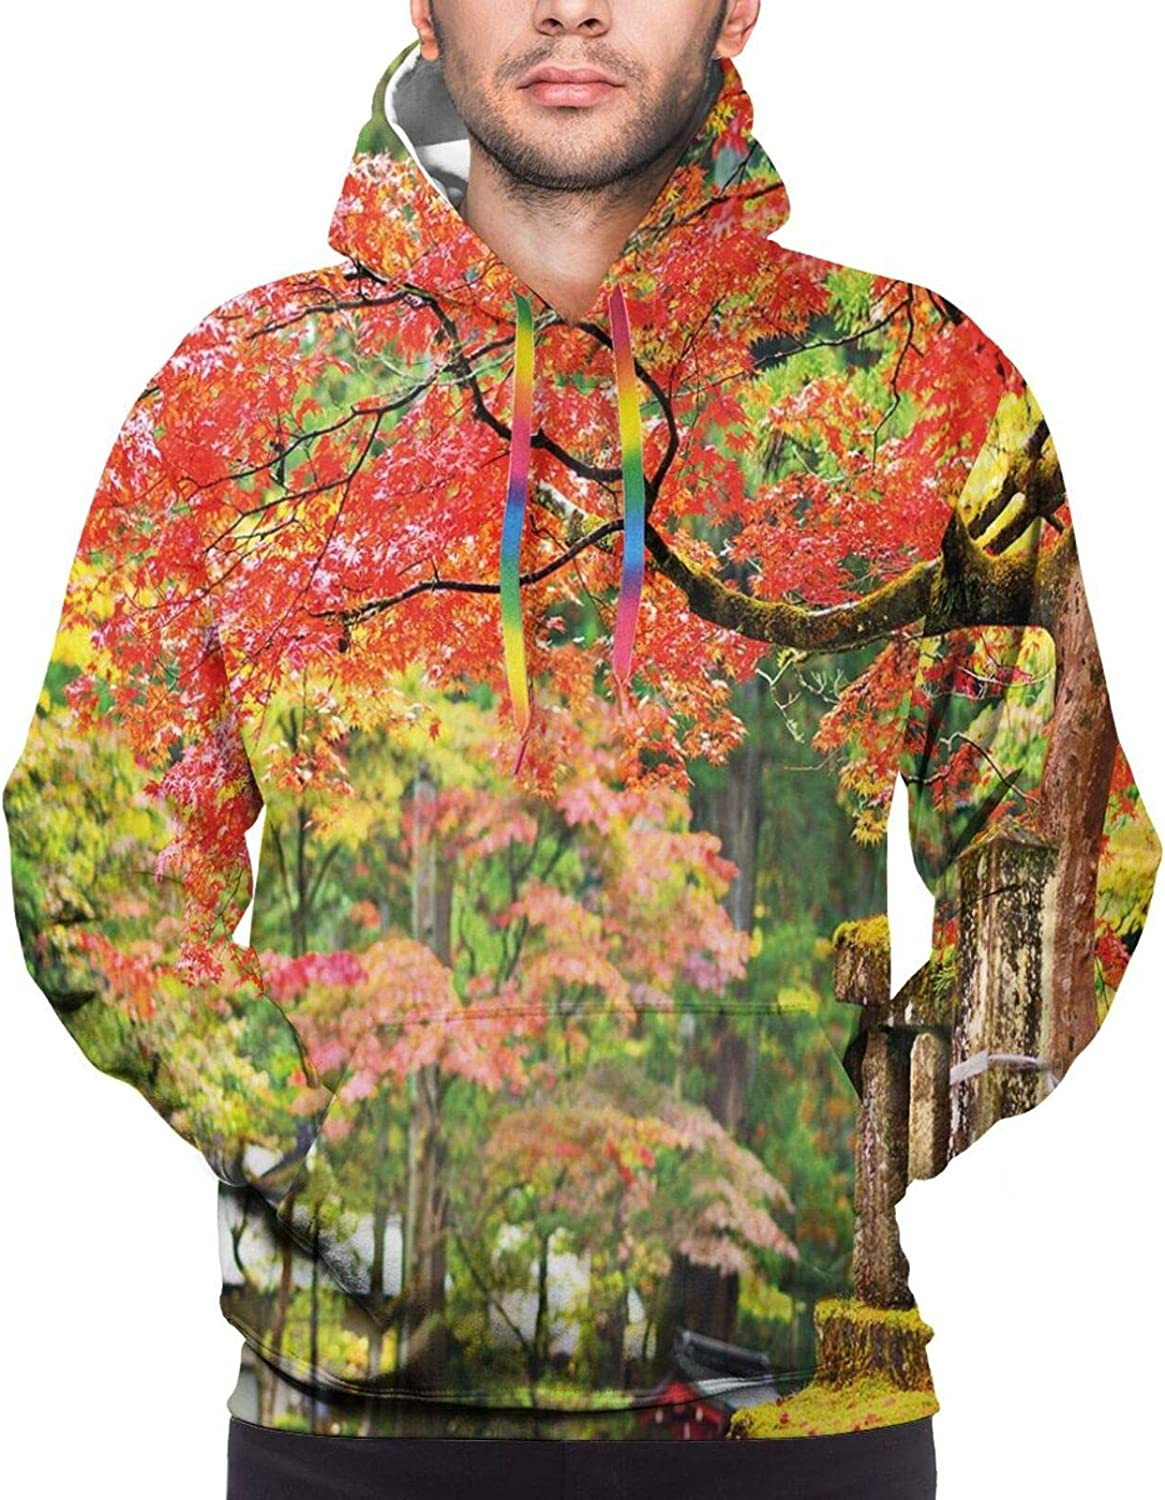 Men's Hoodies Sweatshirts,Autumn Road with Warm Colored Leaves Mountains and Grassland Cartoon Style Nature